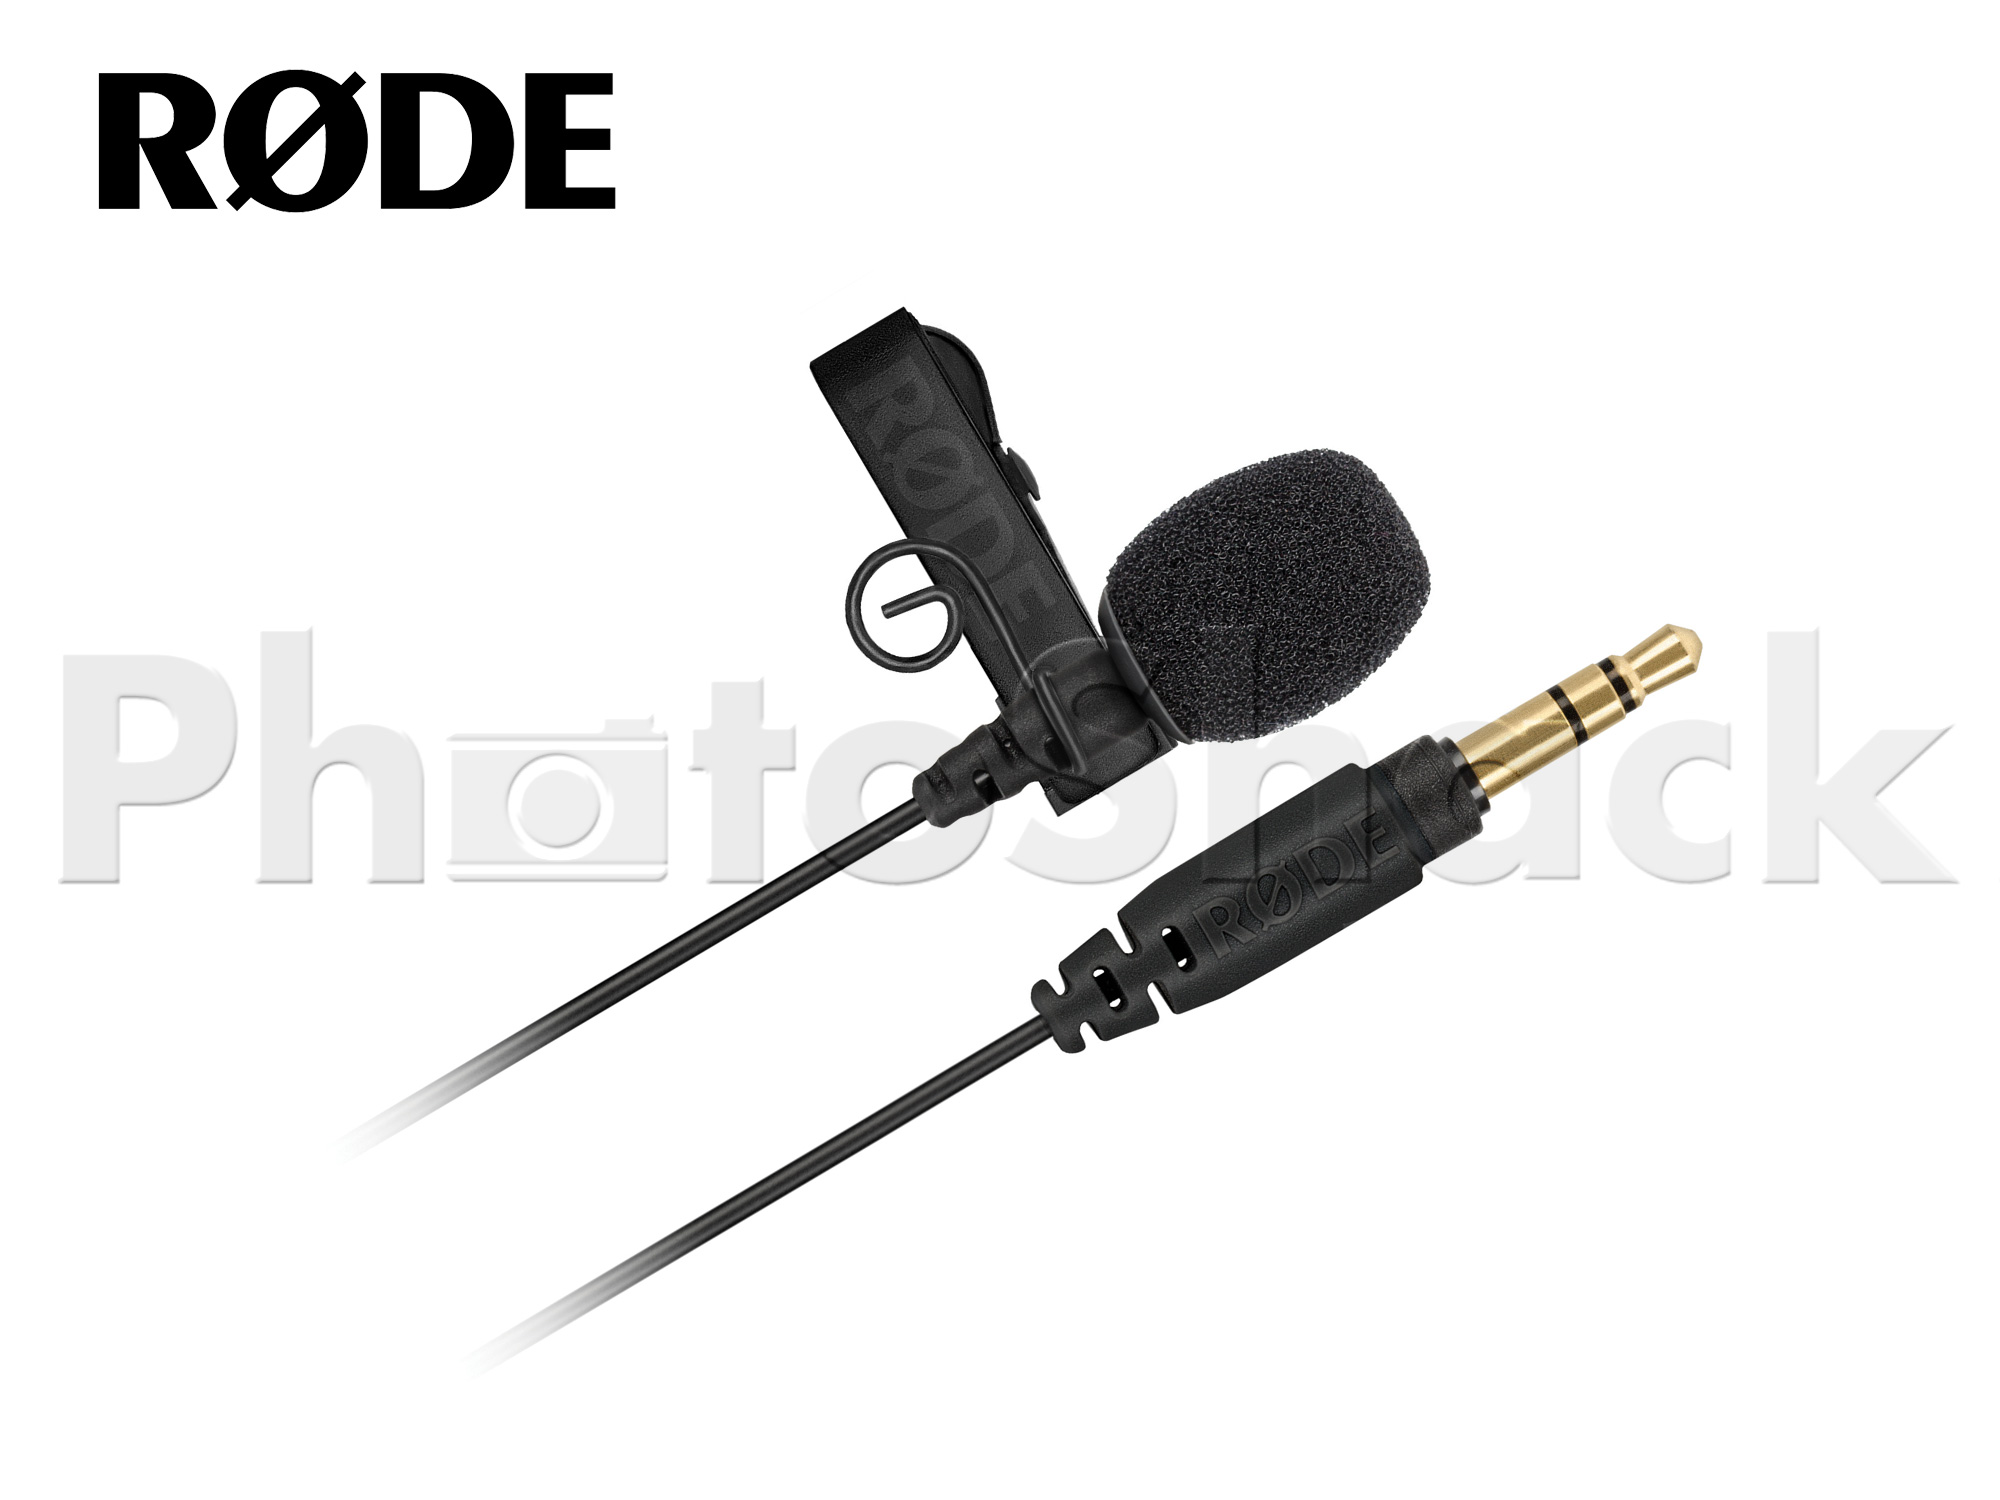 Rode Lavalier GO Omnidirectional Lavalier Microphone for Wireless GO Systems (with free Magnetic clip)